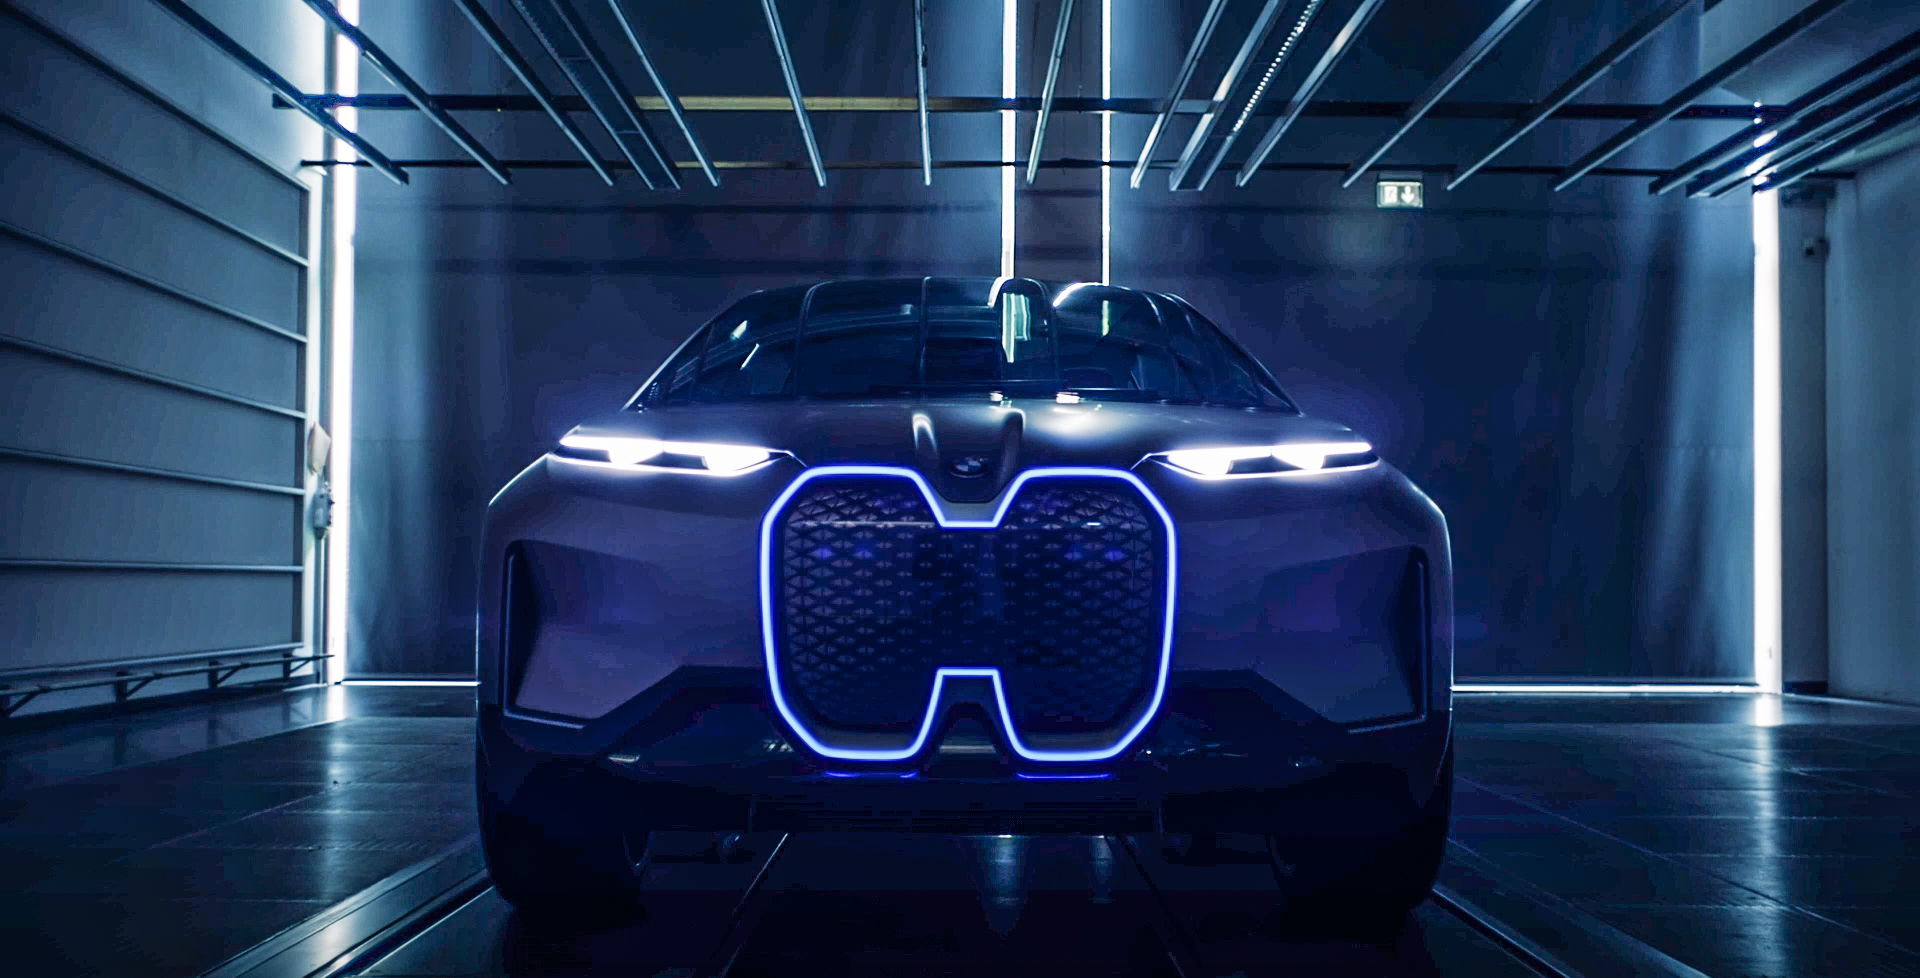 BMW Vision iNEXT shows its face in latest teaser